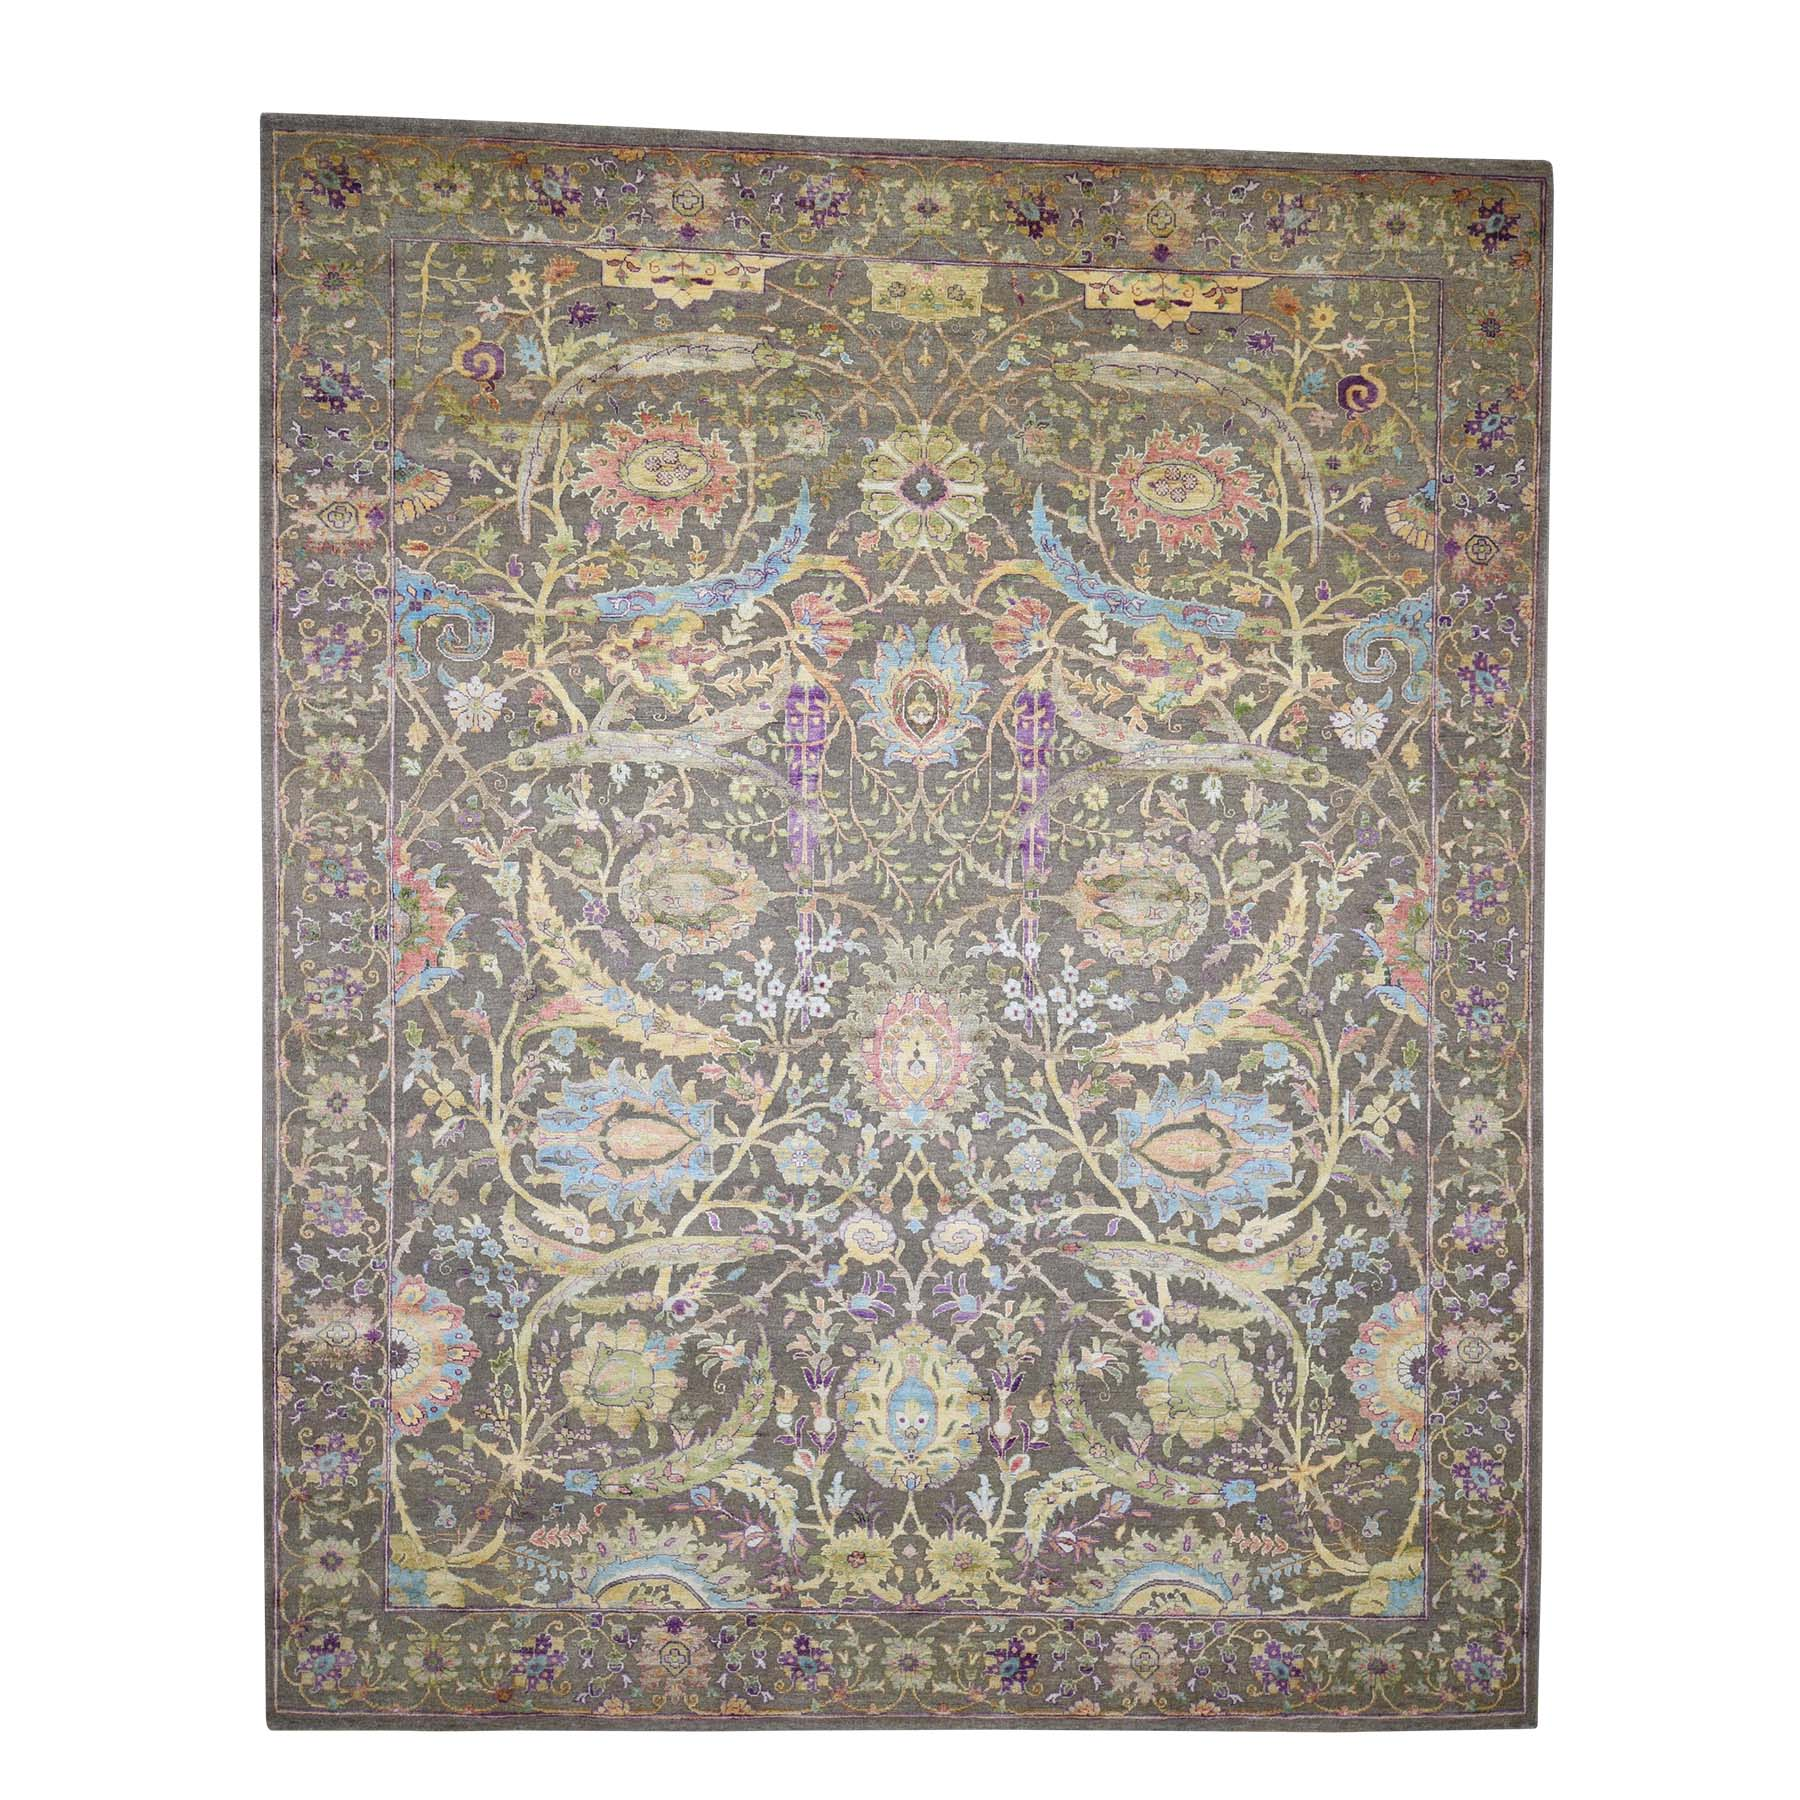 8'X10' Hand-Knotted Sickle Leaf Design Pure Silk With Textured Wool Oriental Rug moad08aa